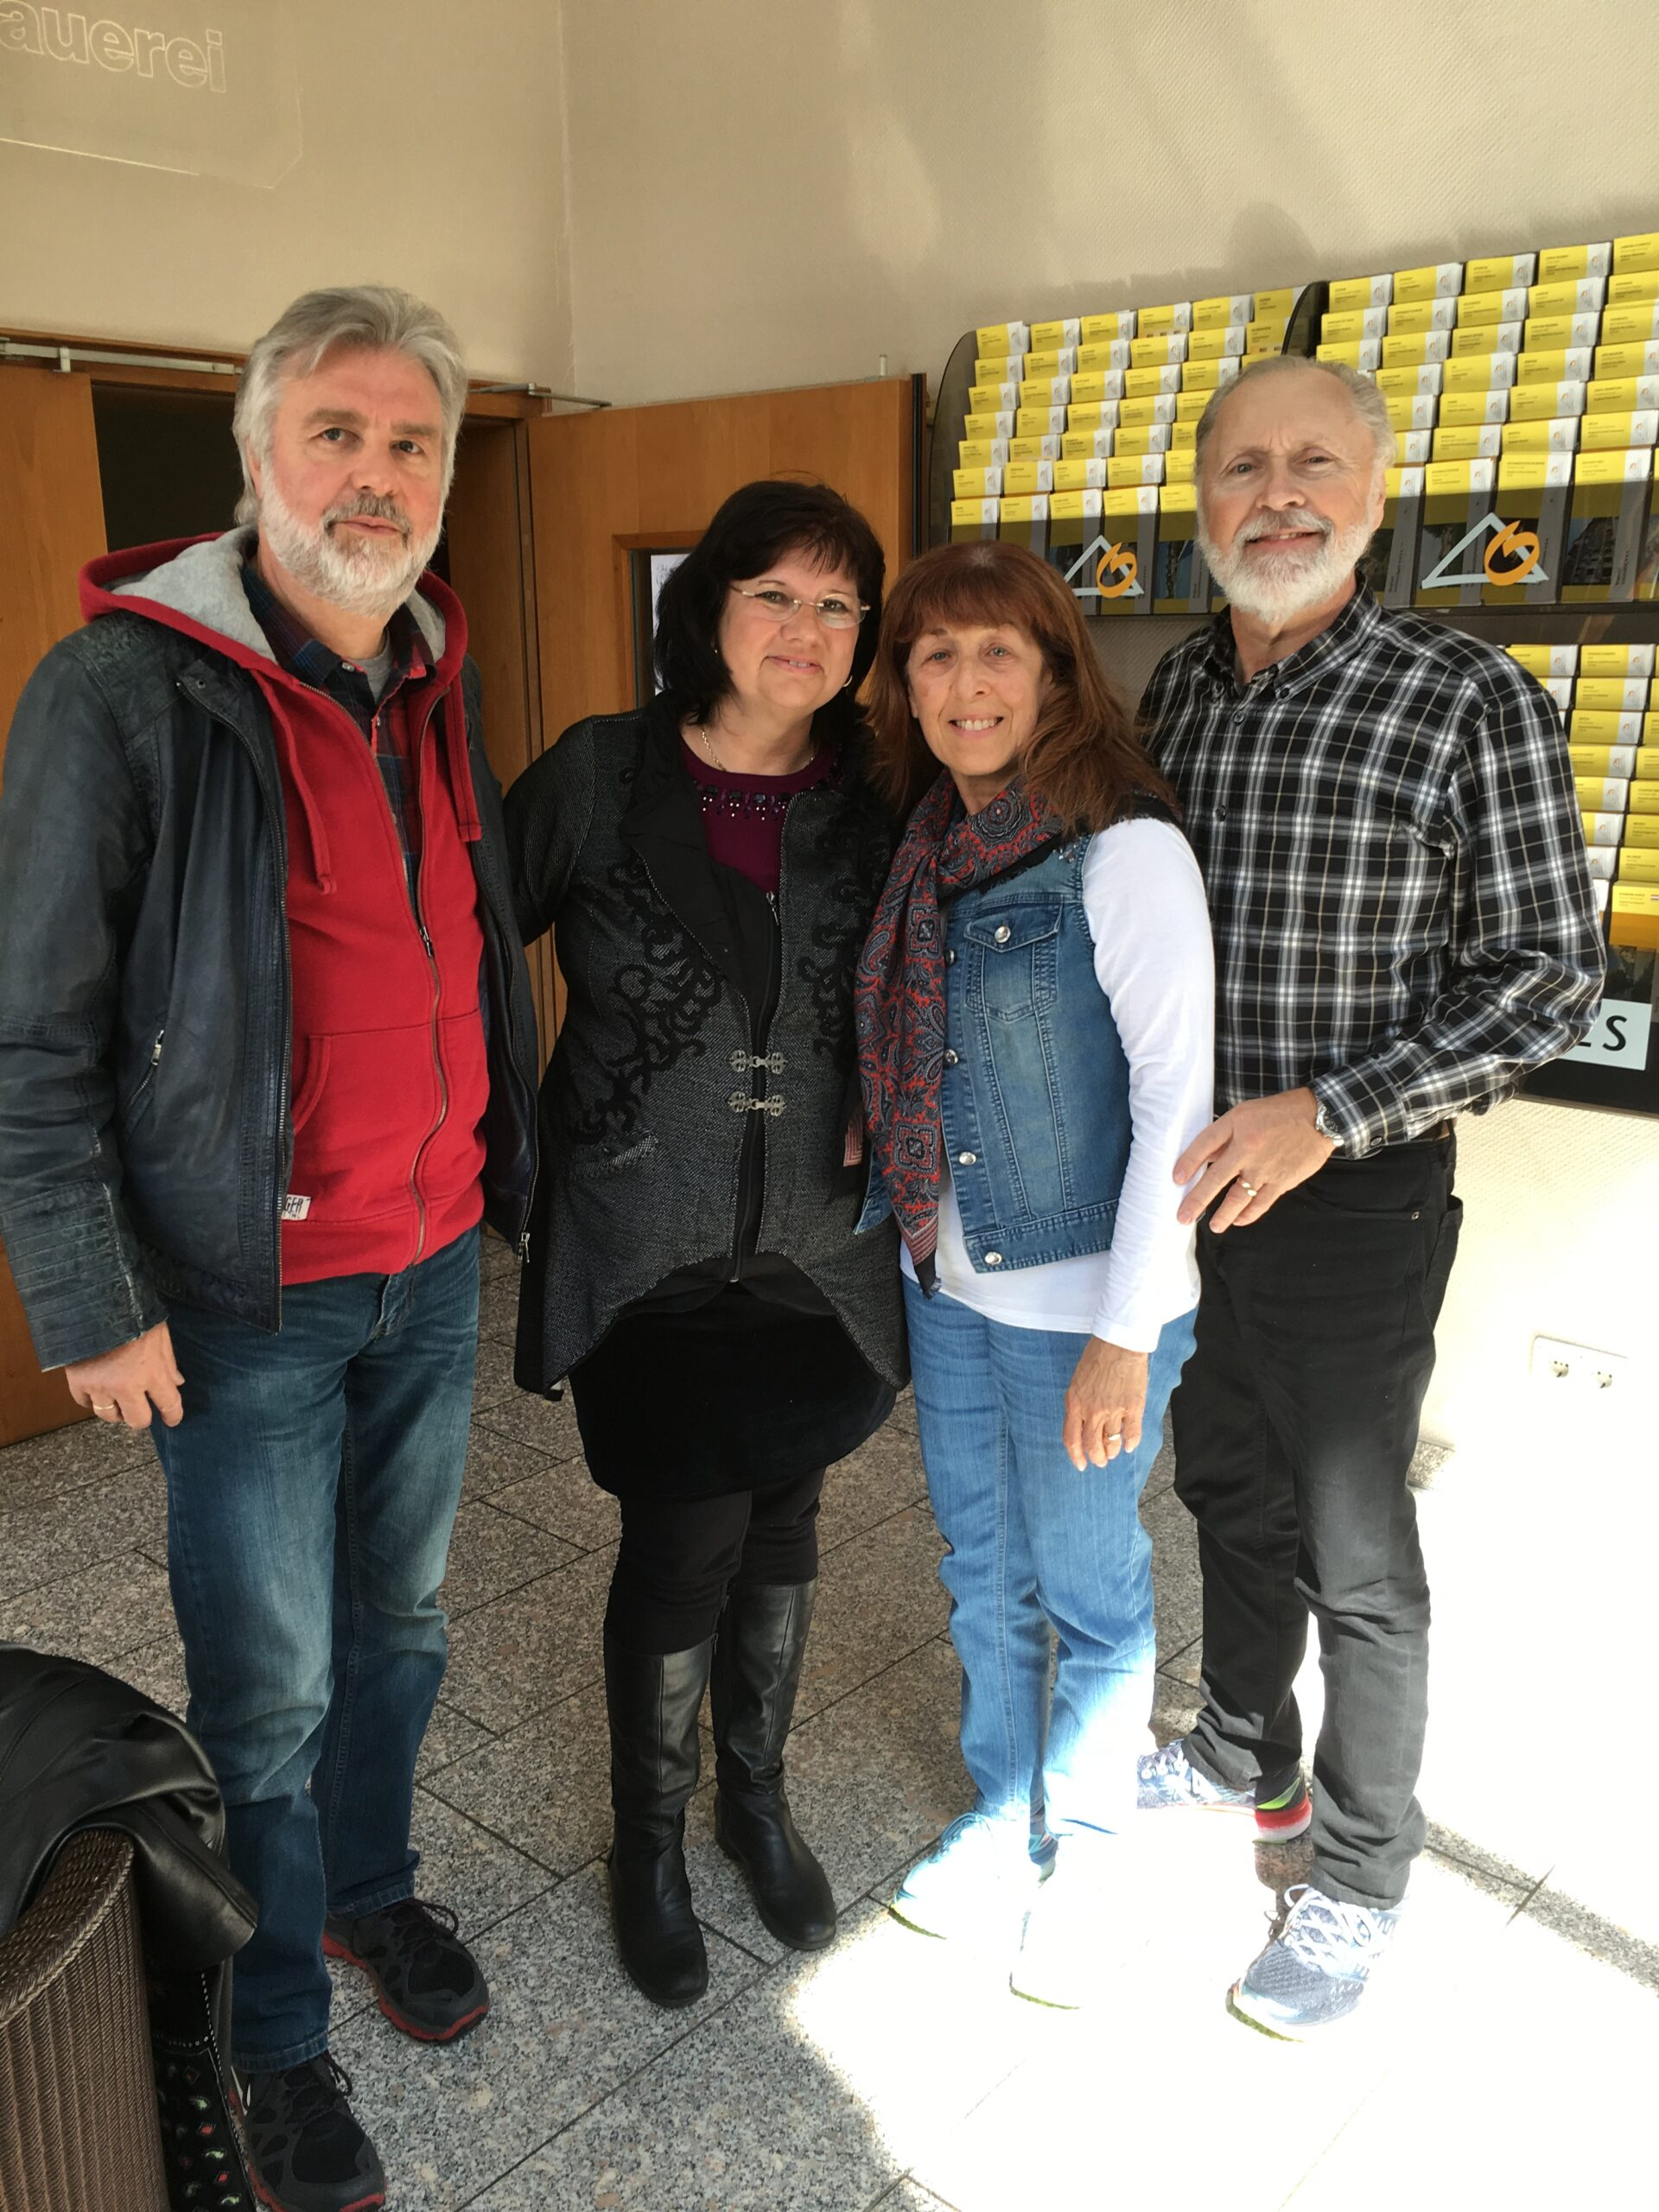 Pastors Gerald and Susan with Pastors Bernhard and Karin Koch in Rinteln, Germany